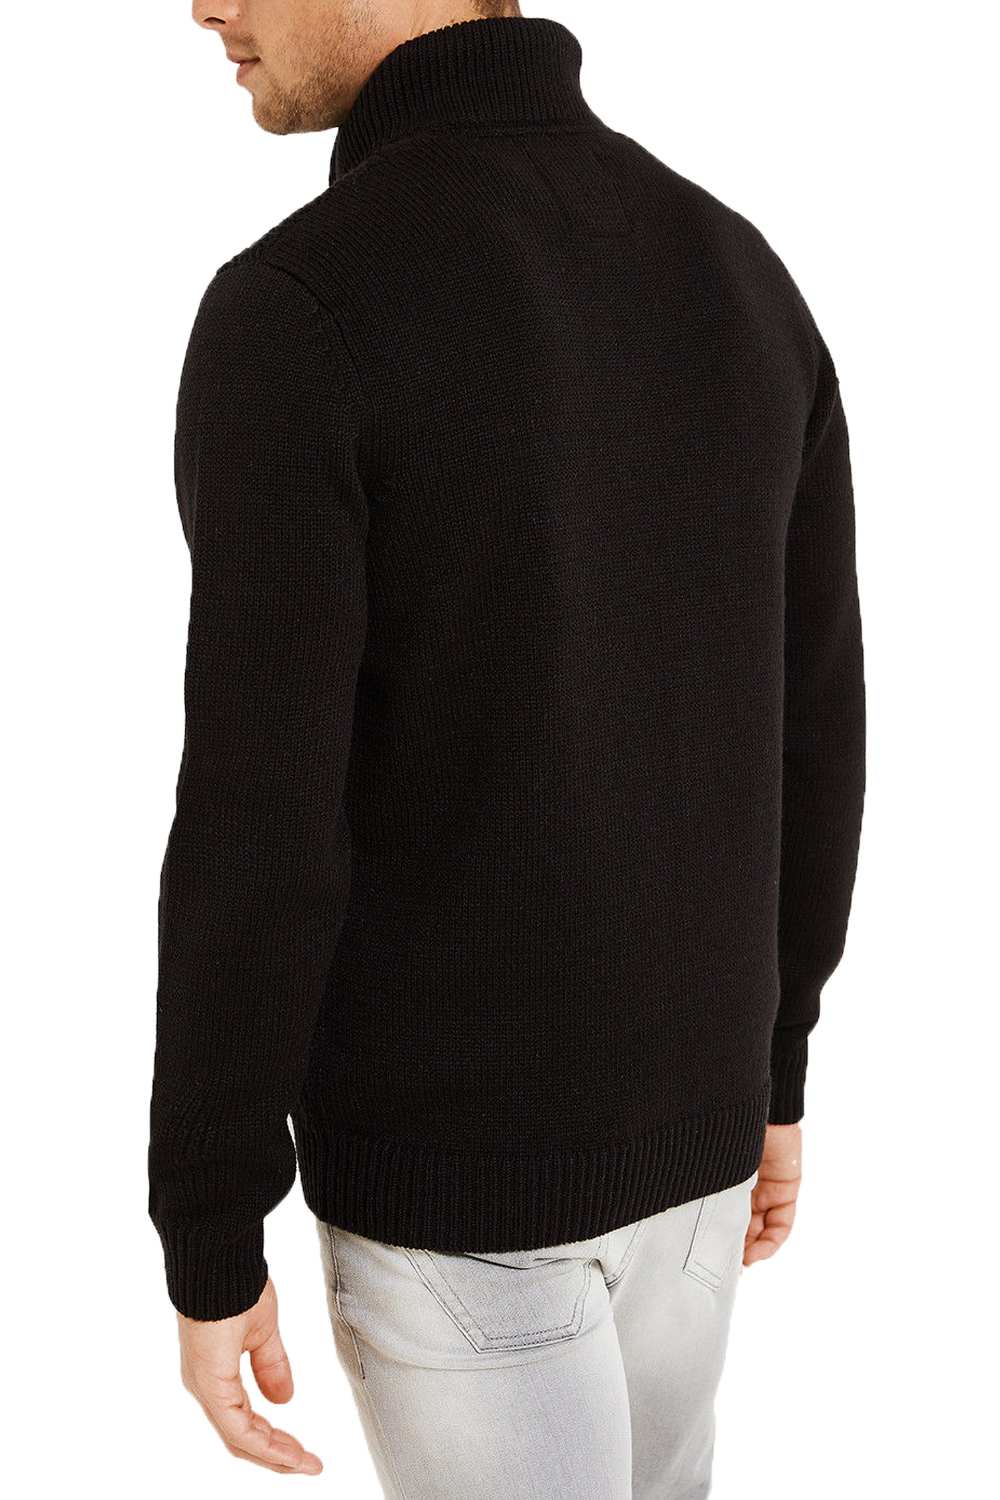 Threadbare Mens Basswood Funnel Neck Ribbed Sweater Zip Collar ...